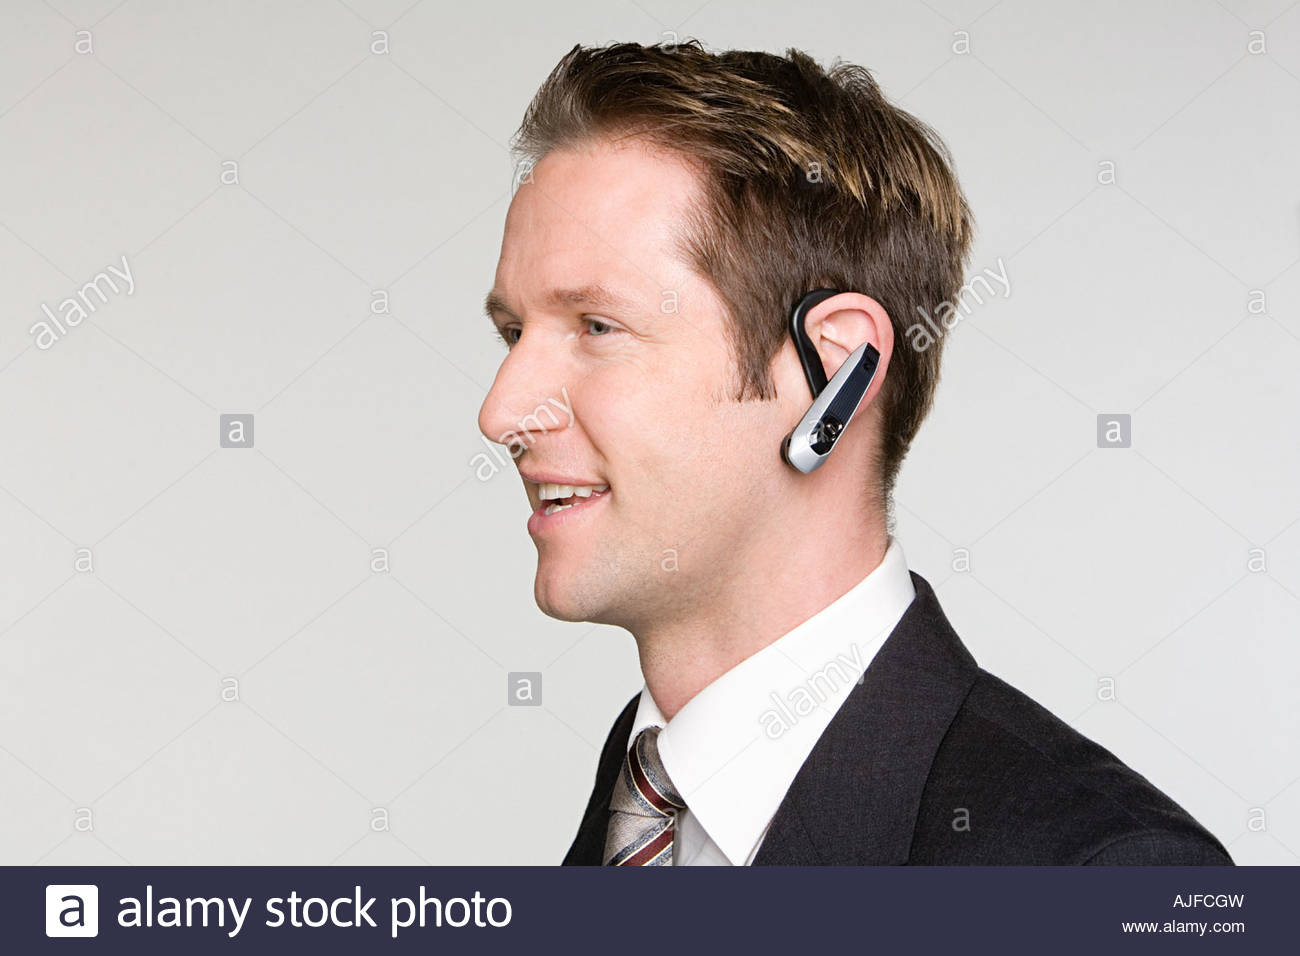 Businessman using hands free device - Stock Image